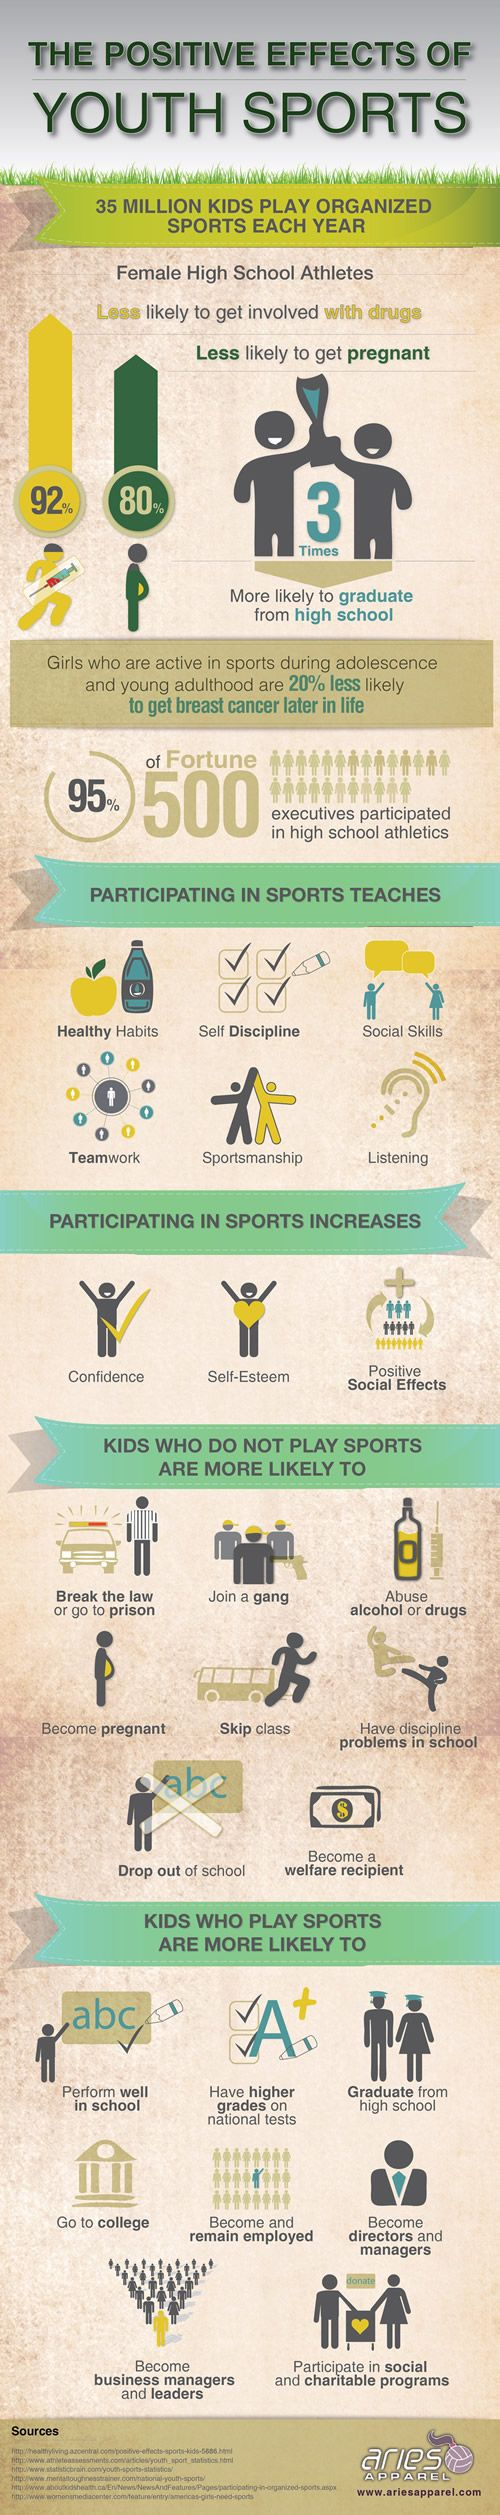 positive effects of girls playing sports essay An essay or paper on the positive effects of athletics and children playing sports as a child is like a practice run for the future.